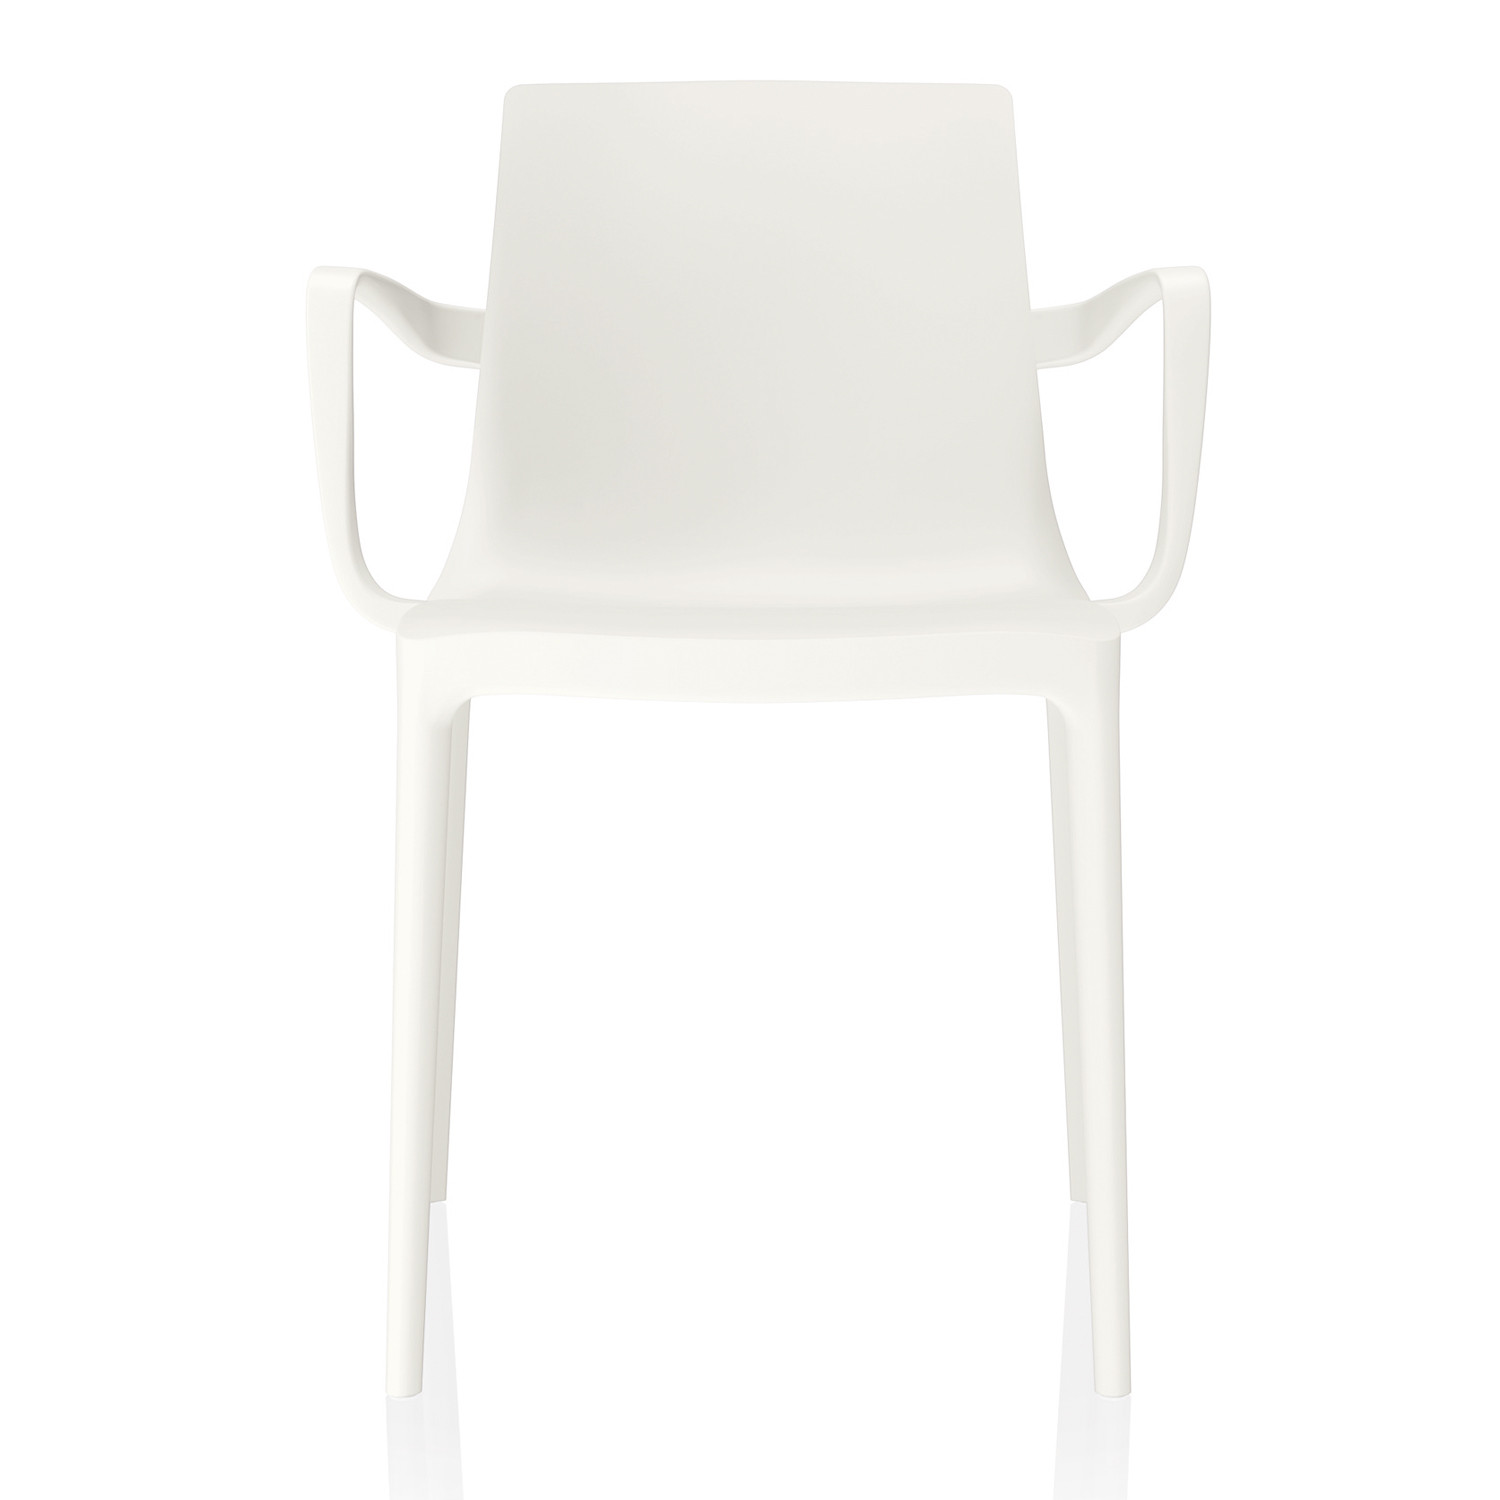 Twin Outdoor 4-Legged Chair with Armrests